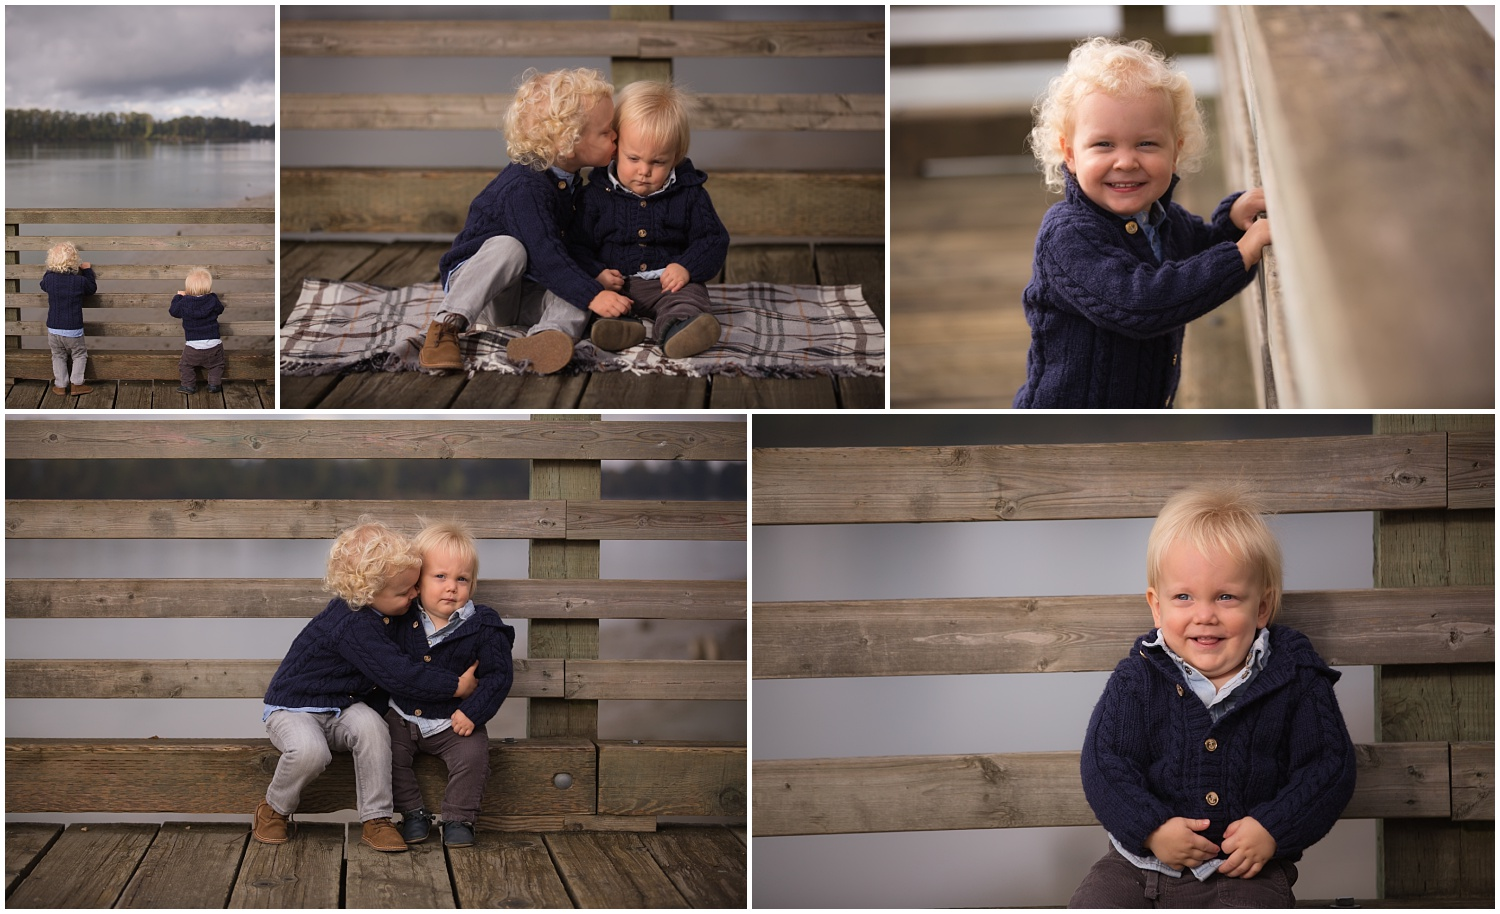 Amazing Day Photography - Fall Mini Sessions - Fall Family Photos - Langley Family Photographer (1).jpg